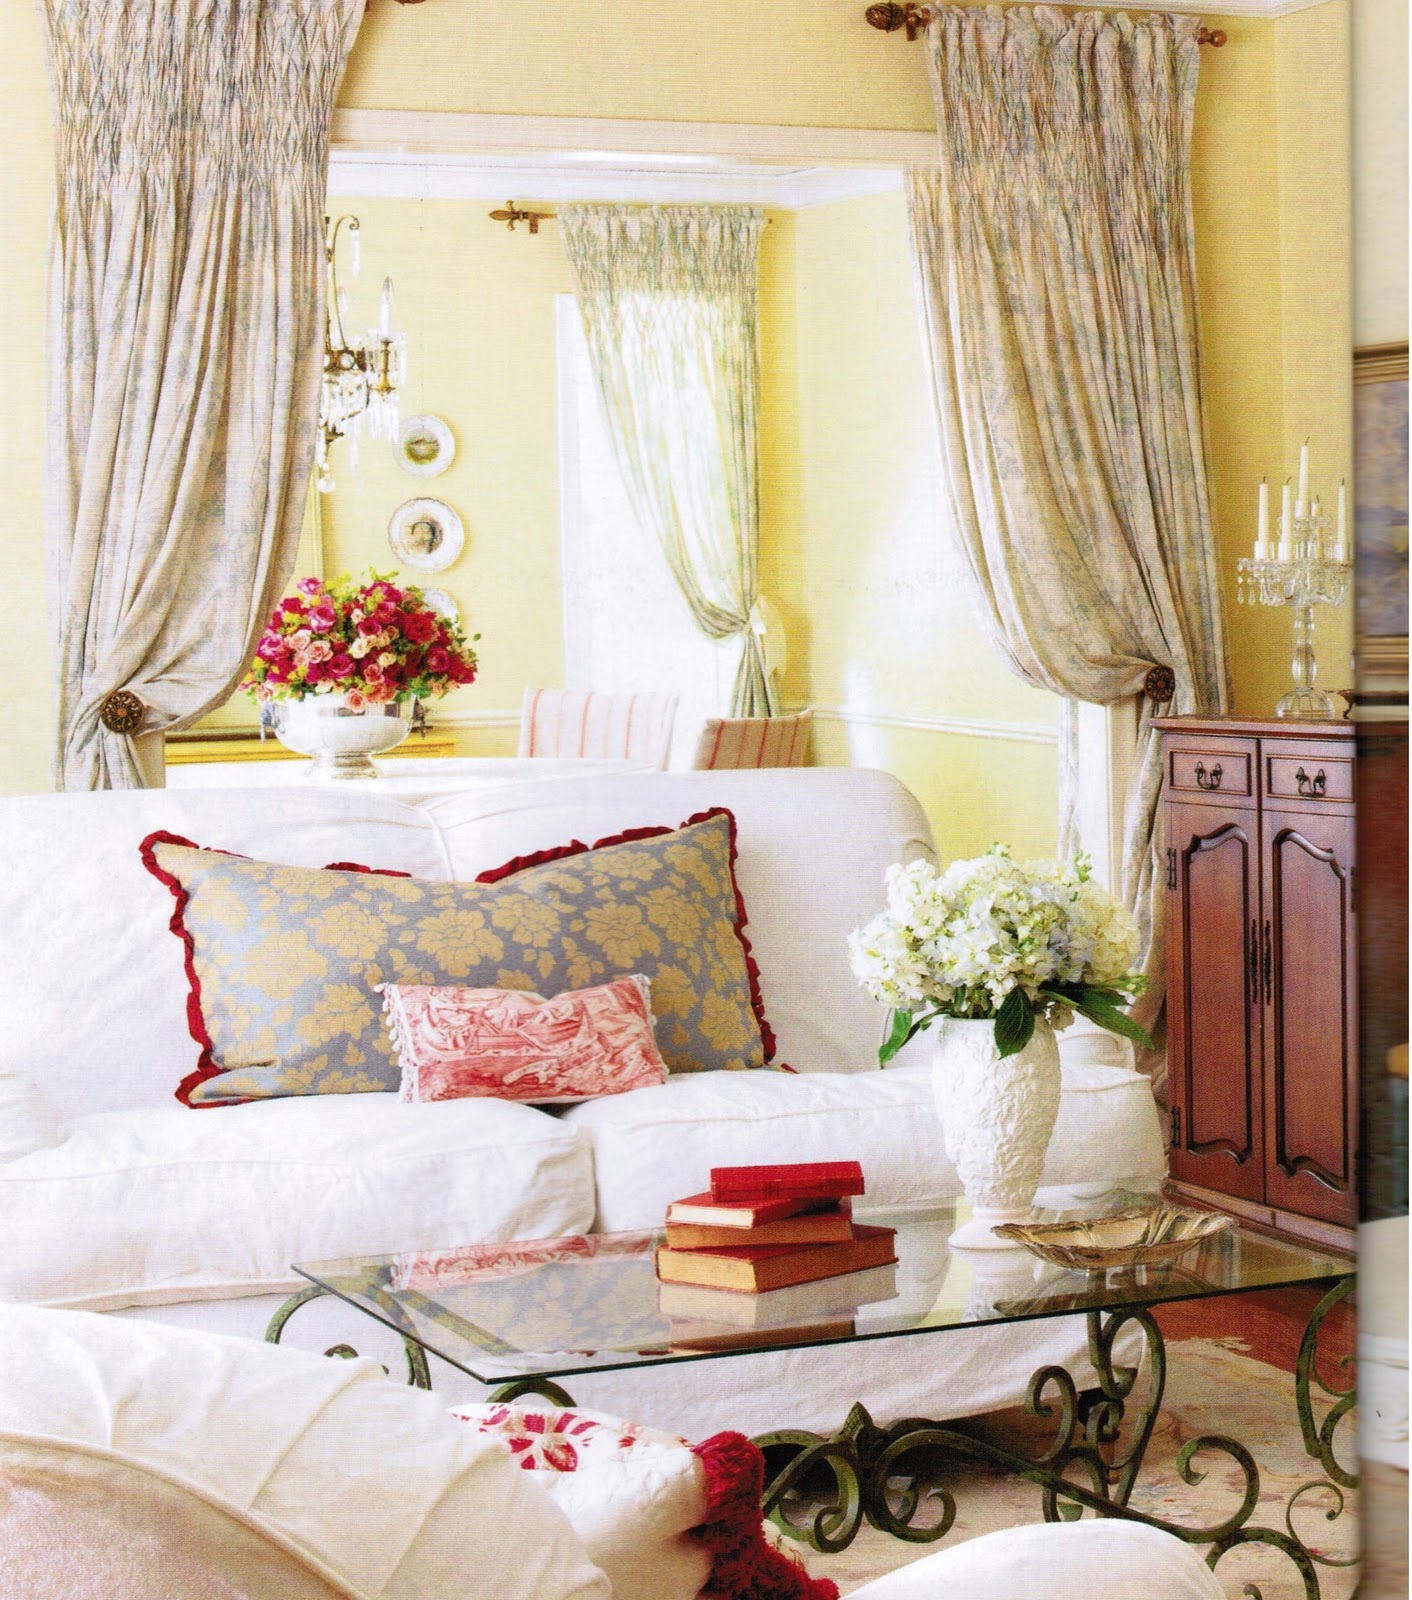 Maison Decor: French Country: Enchanting Yellow & White - photo#33